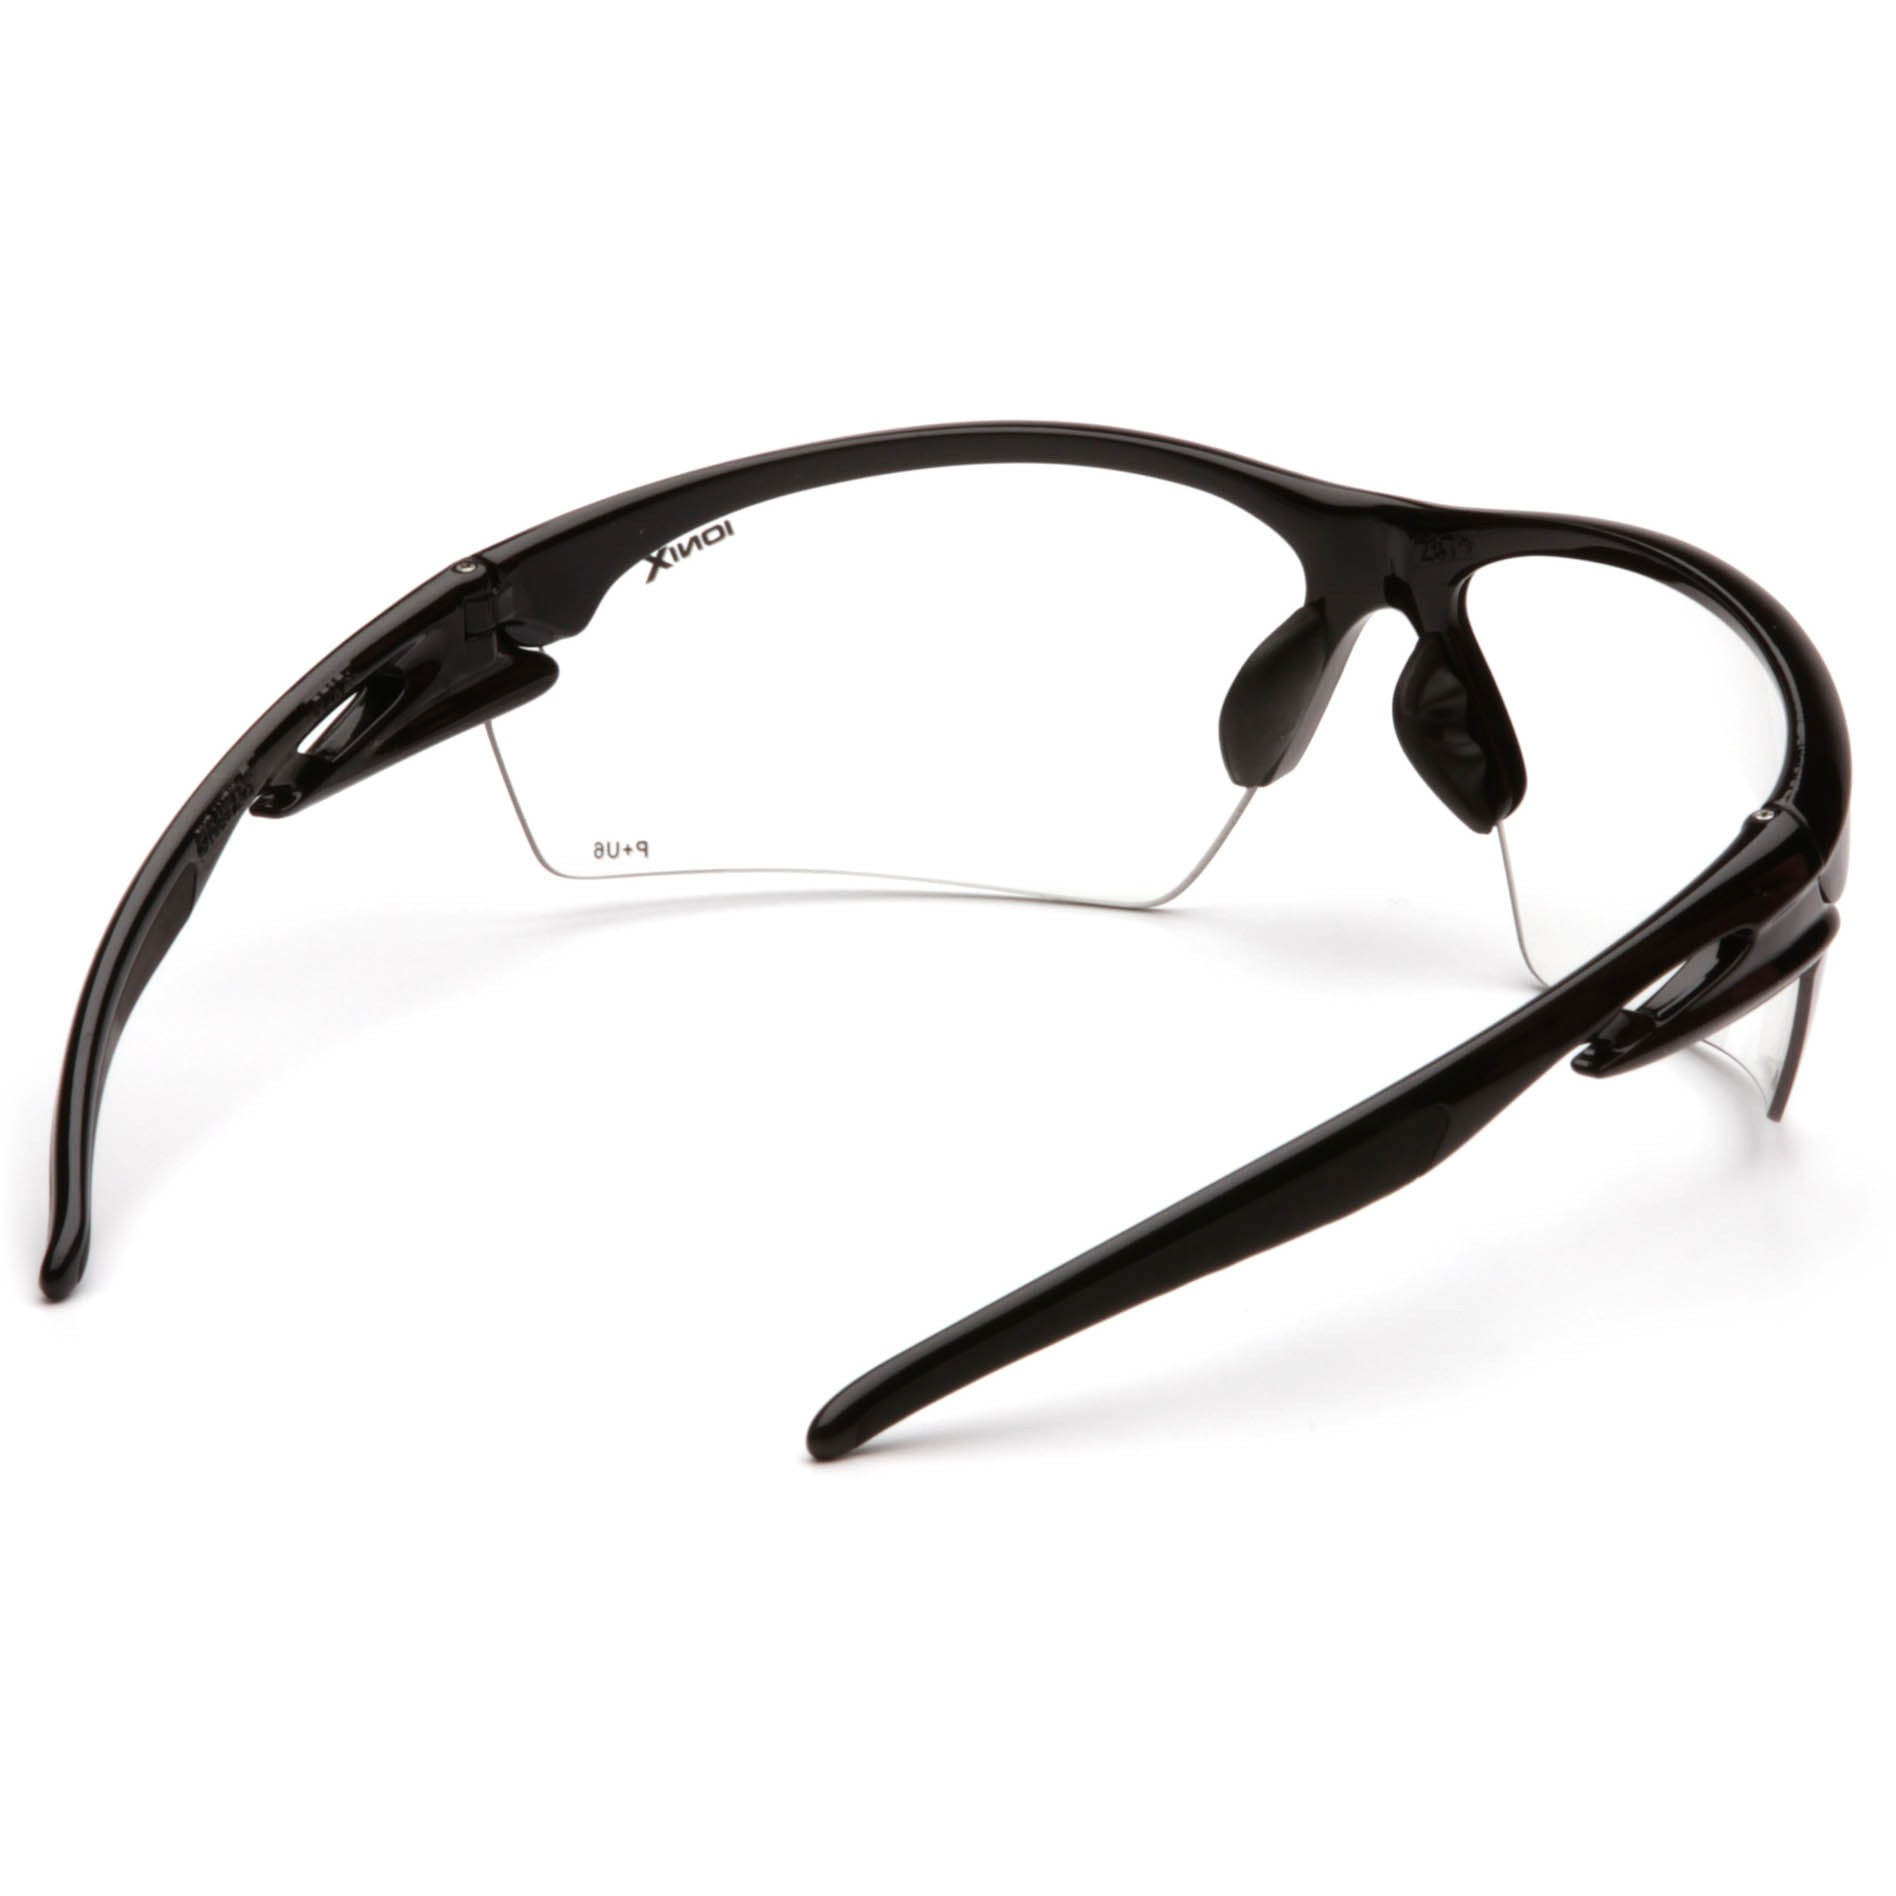 Black Frame Glasses With Clear Lenses : Pyramex Ionix Safety Glasses - Black Frame - Clear Lens ...